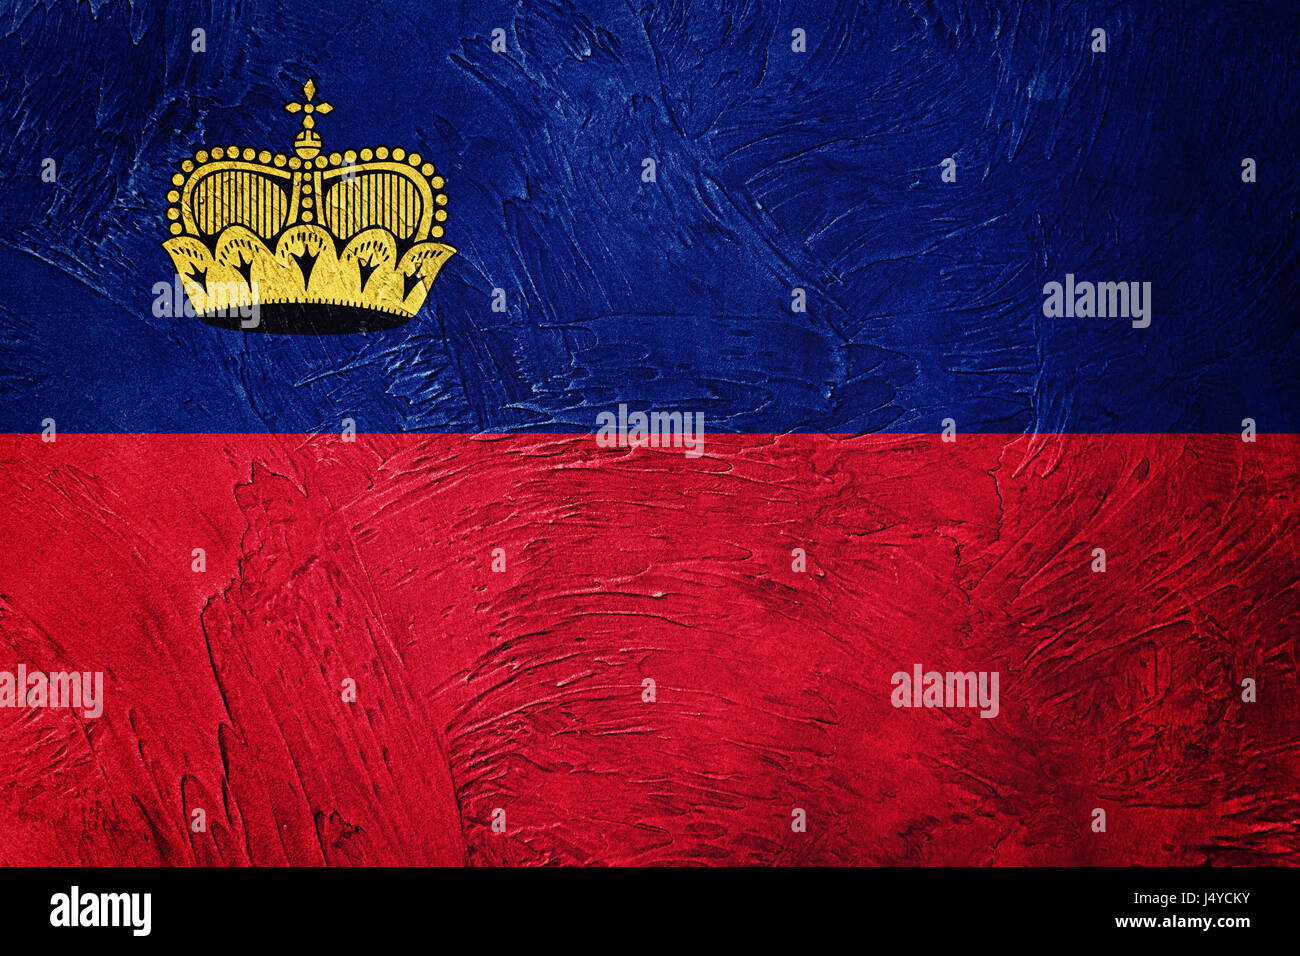 Grunge Liechtenstein flag. Liechtenstein flag with grunge texture. - Stock Image